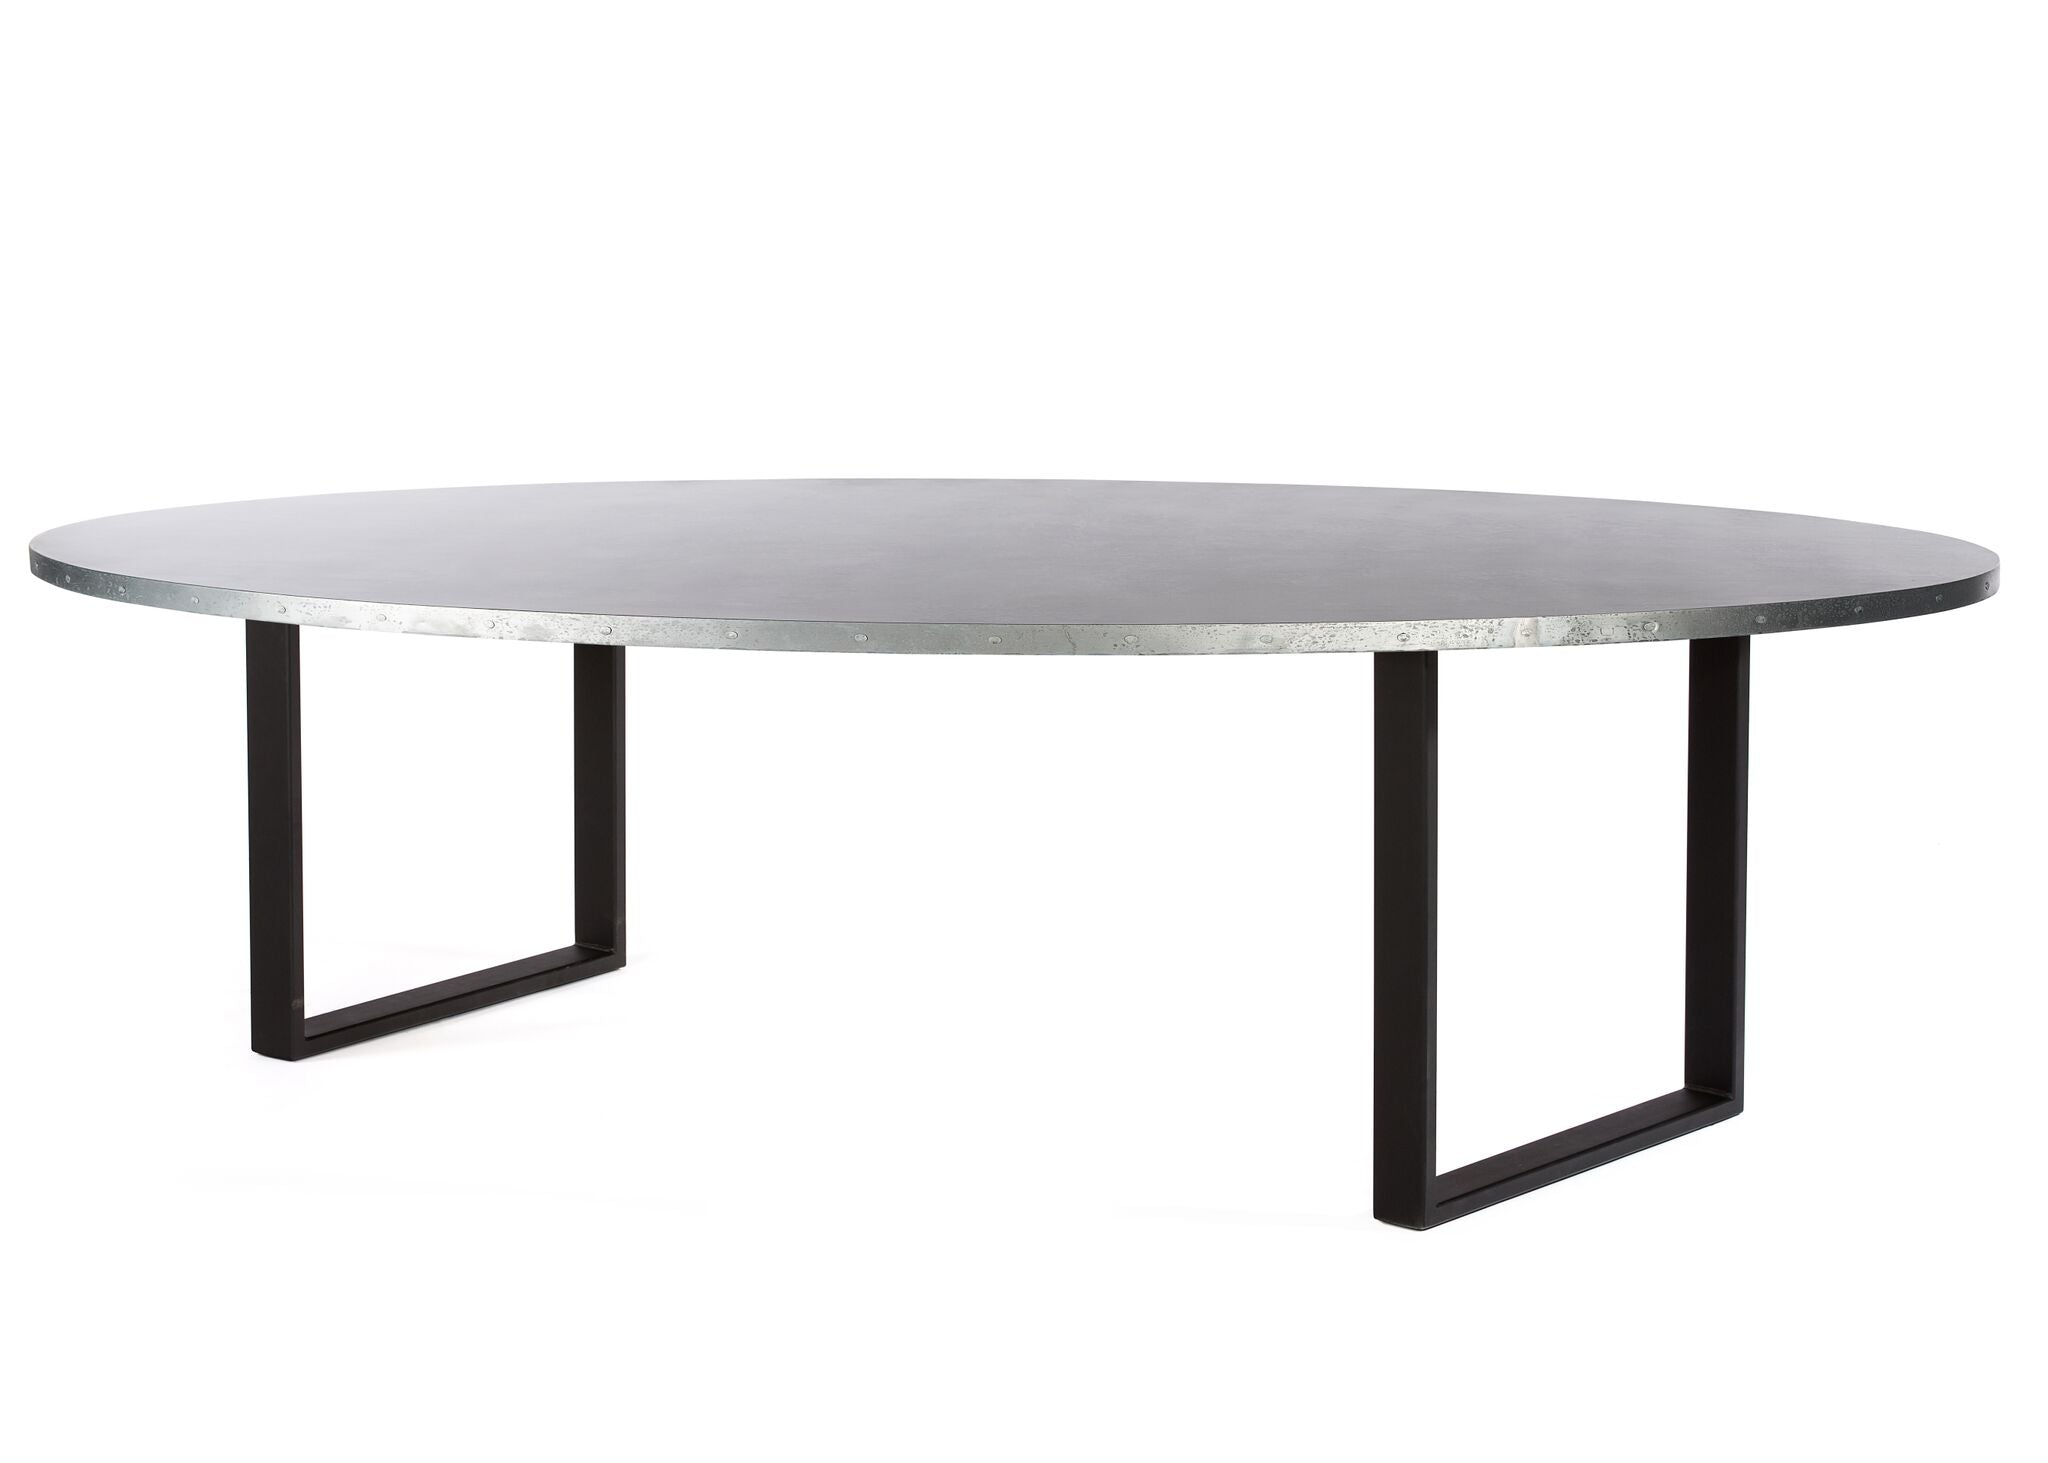 "Zinc Oval Tables | Maddox Table | CLASSIC | Black | CUSTOM SIZE 84""L 42""W 30""H 